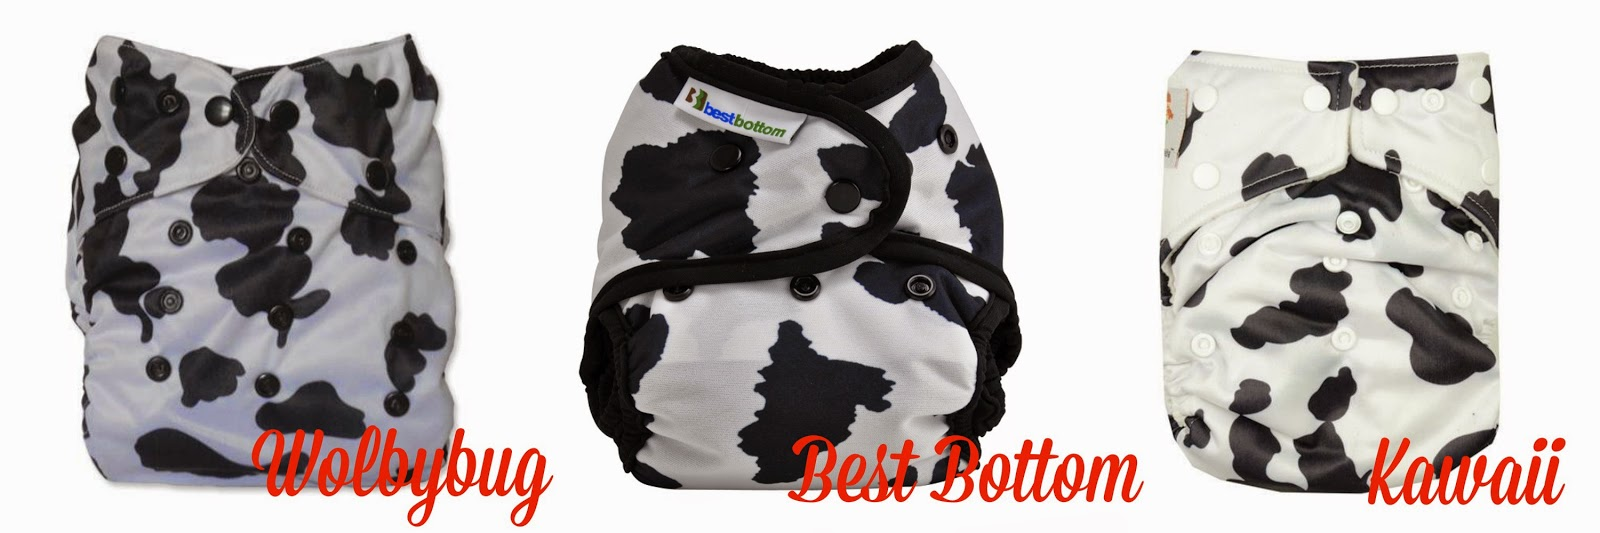 Cow Cloth Diapers